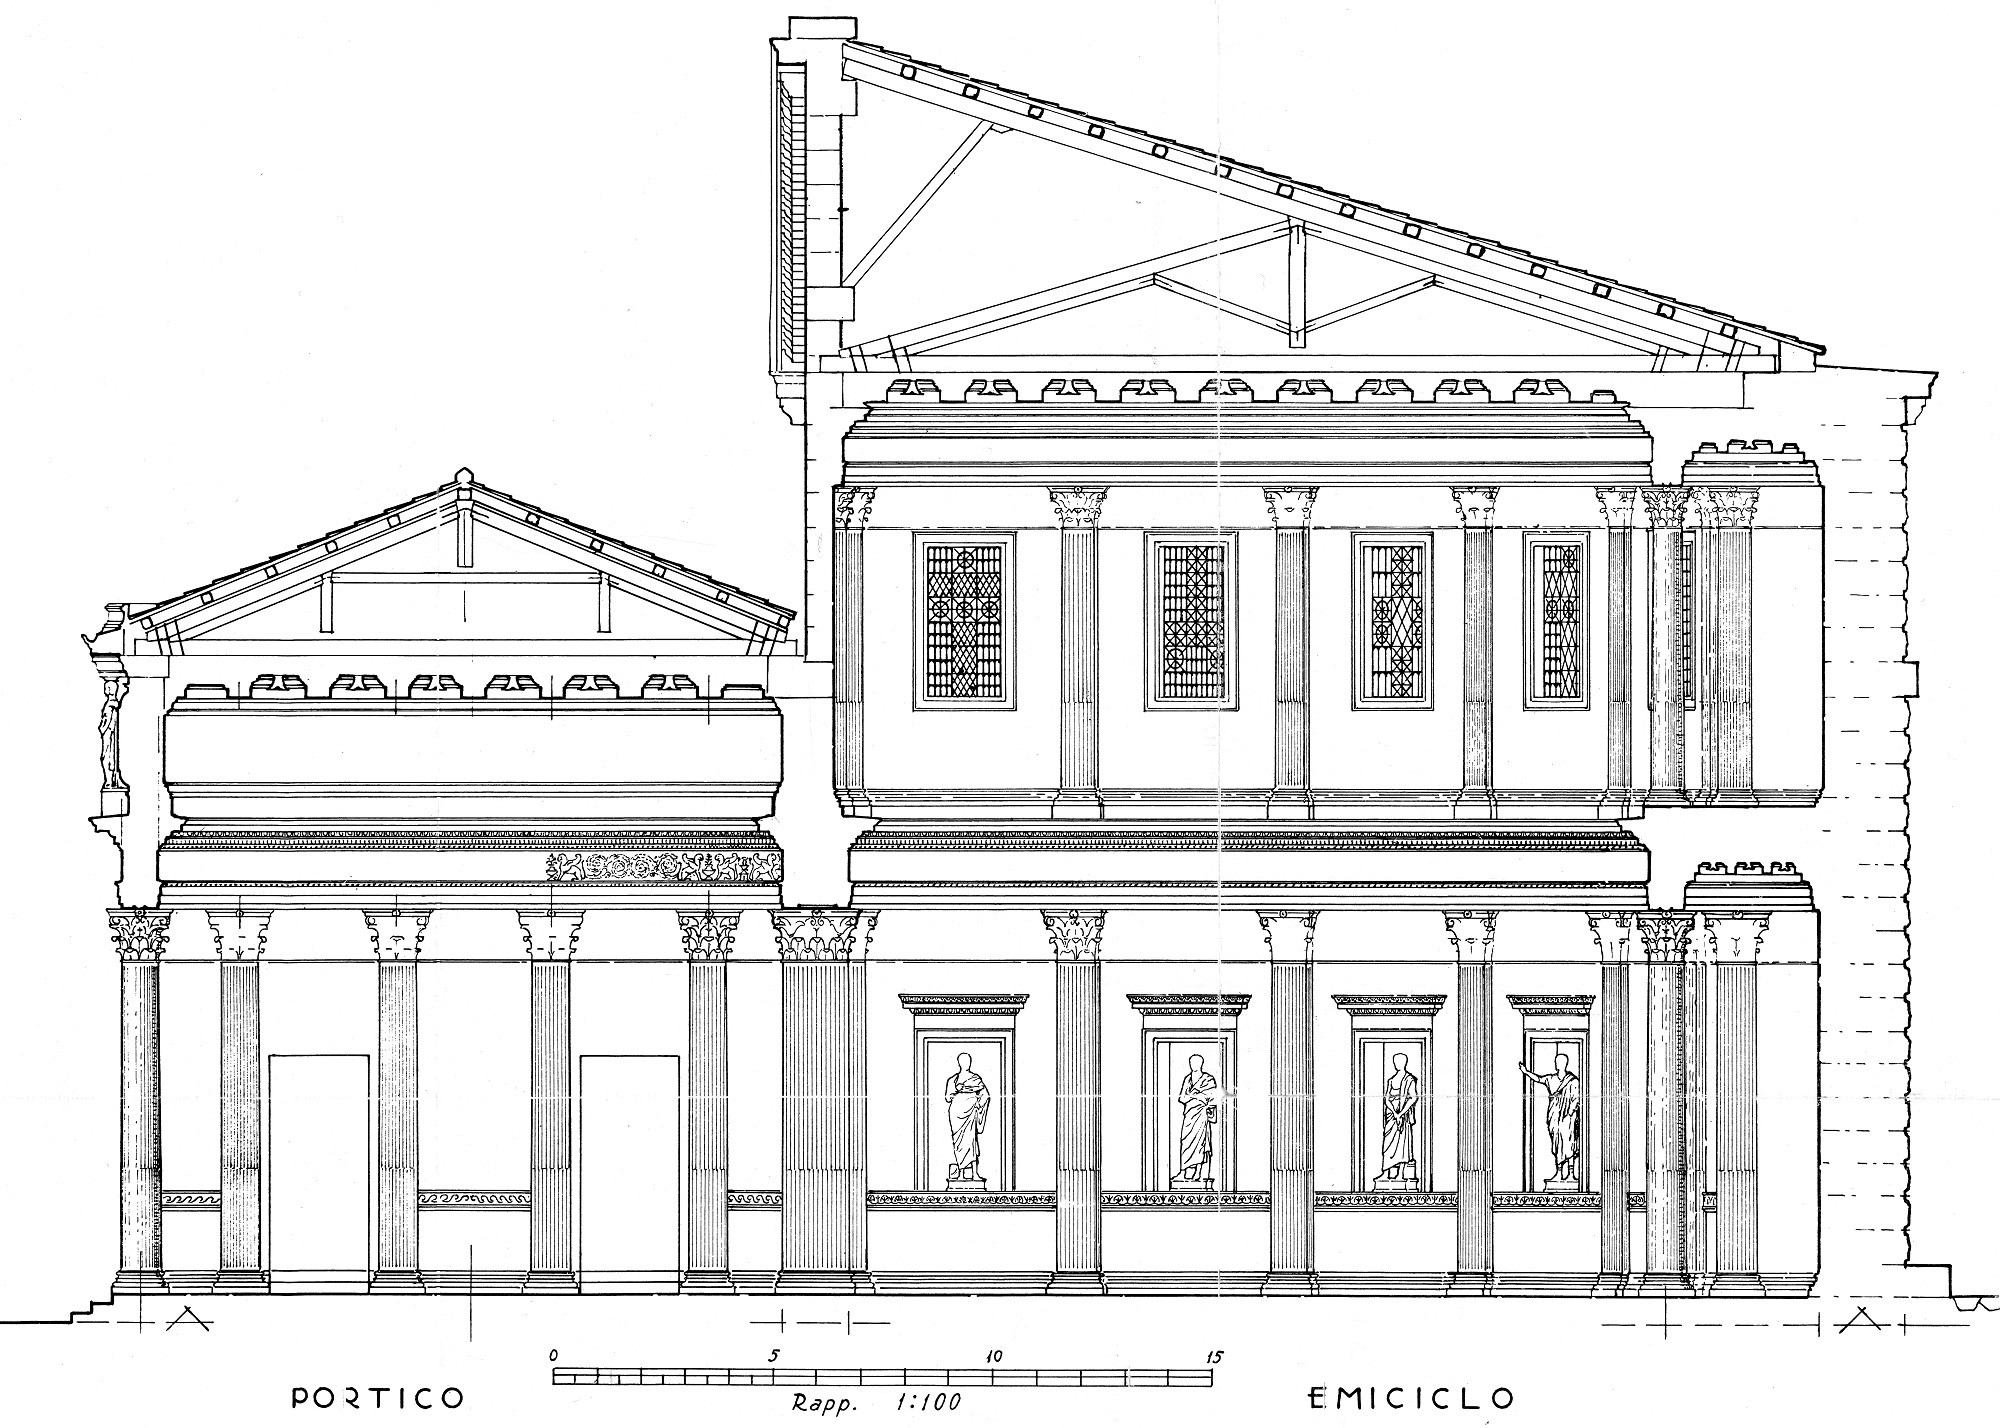 Reconstructive cross section of the hemicycle and the eastern portico of the Forum of Trajan (Italo Gismondi)